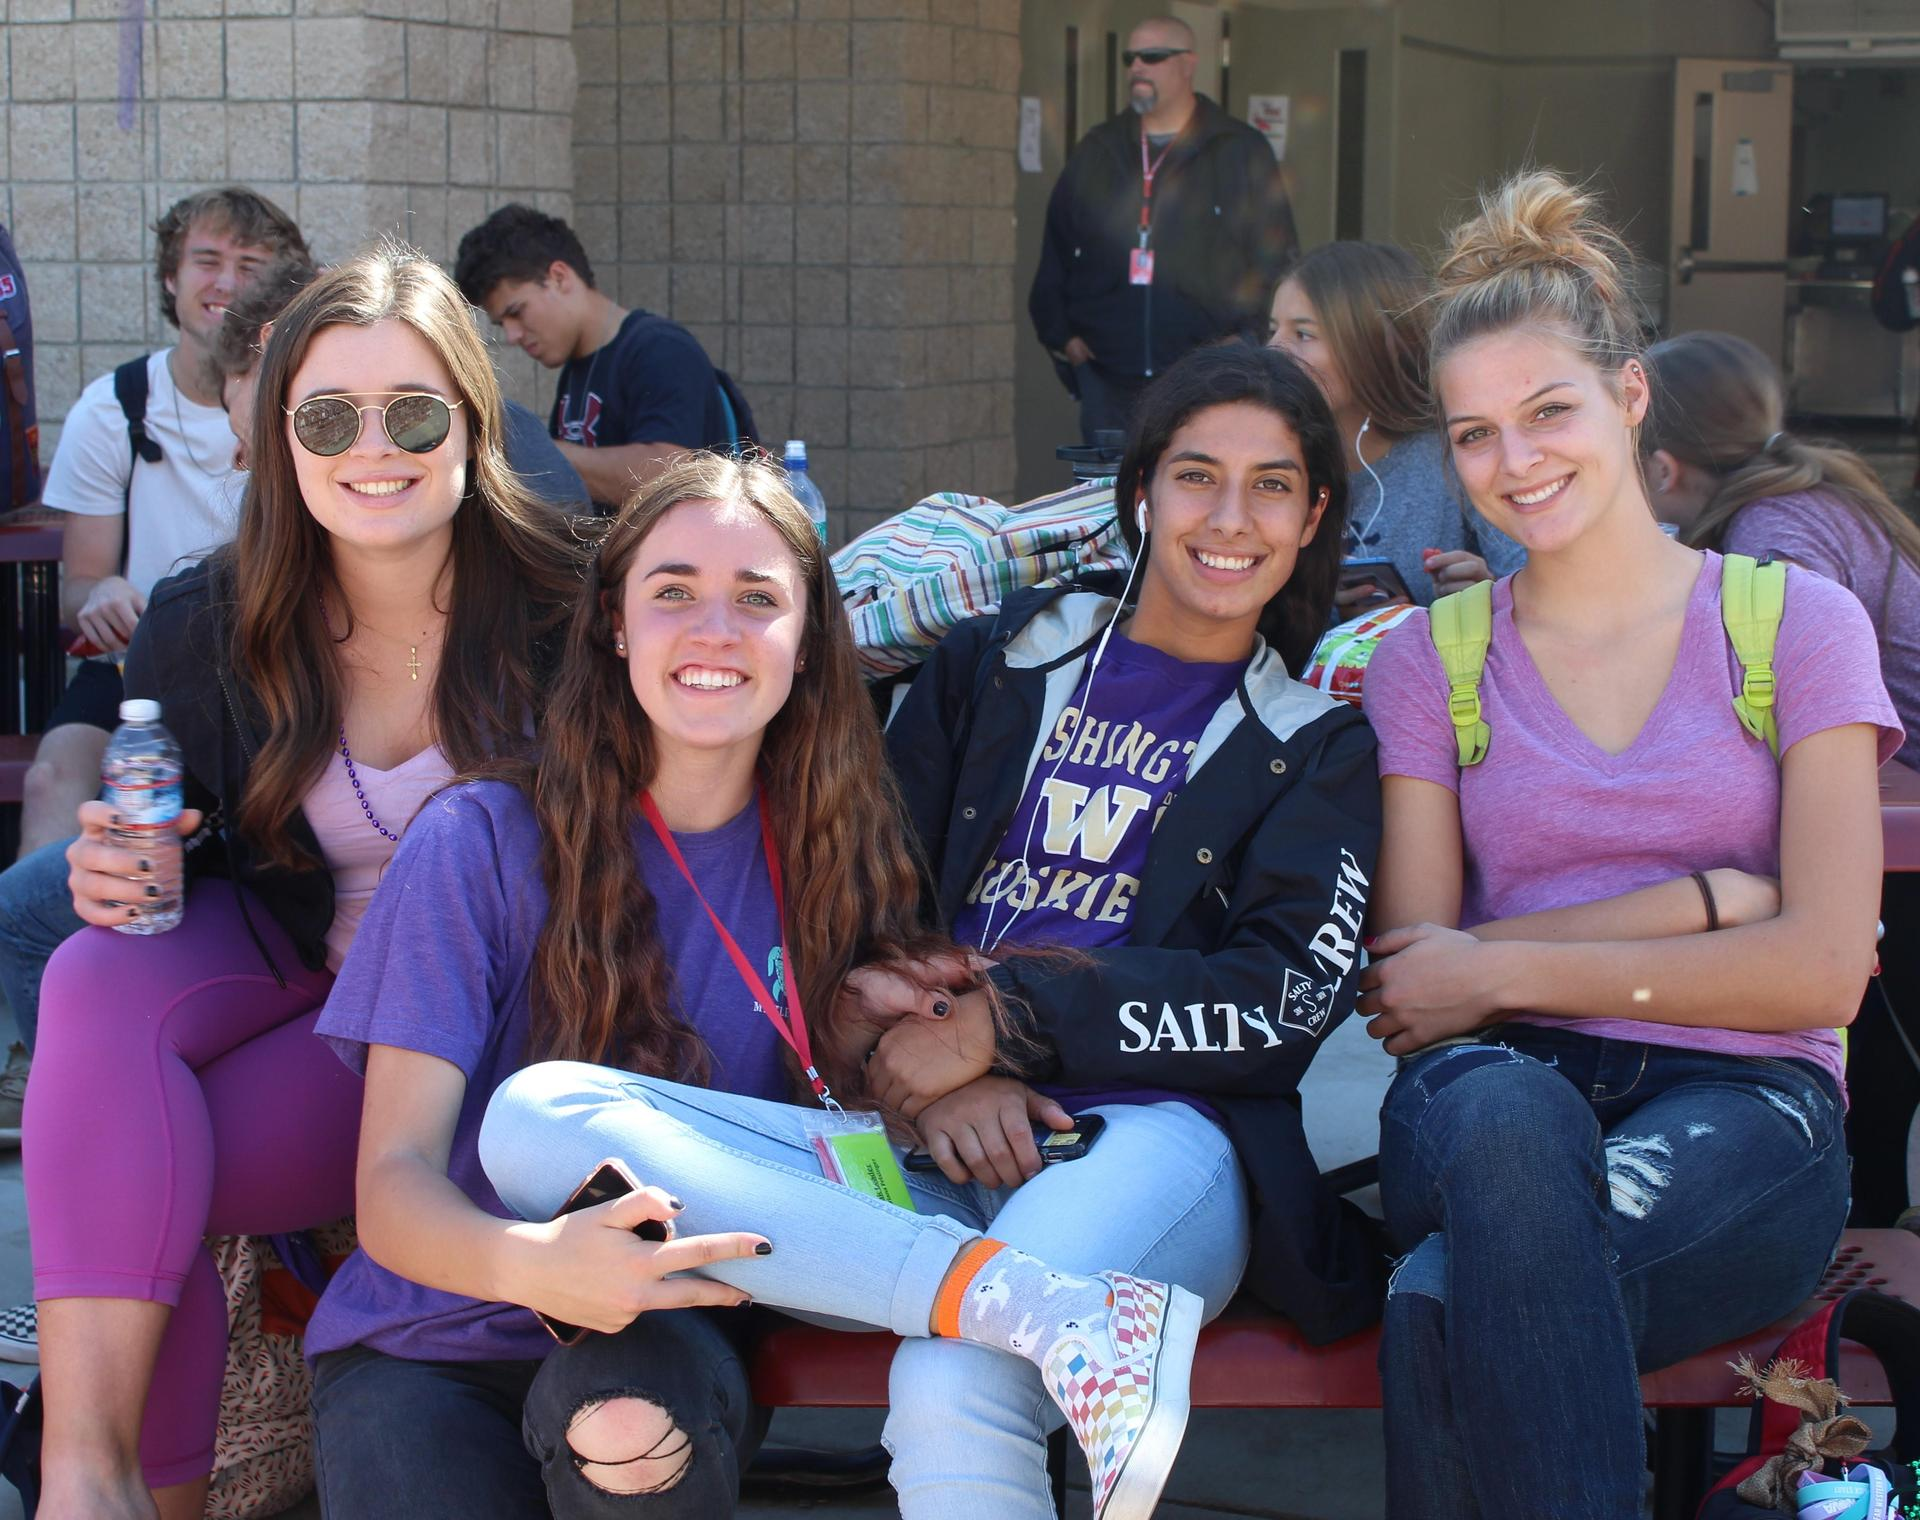 Students and staff wearing purple clothing to support awareness of all cancers.